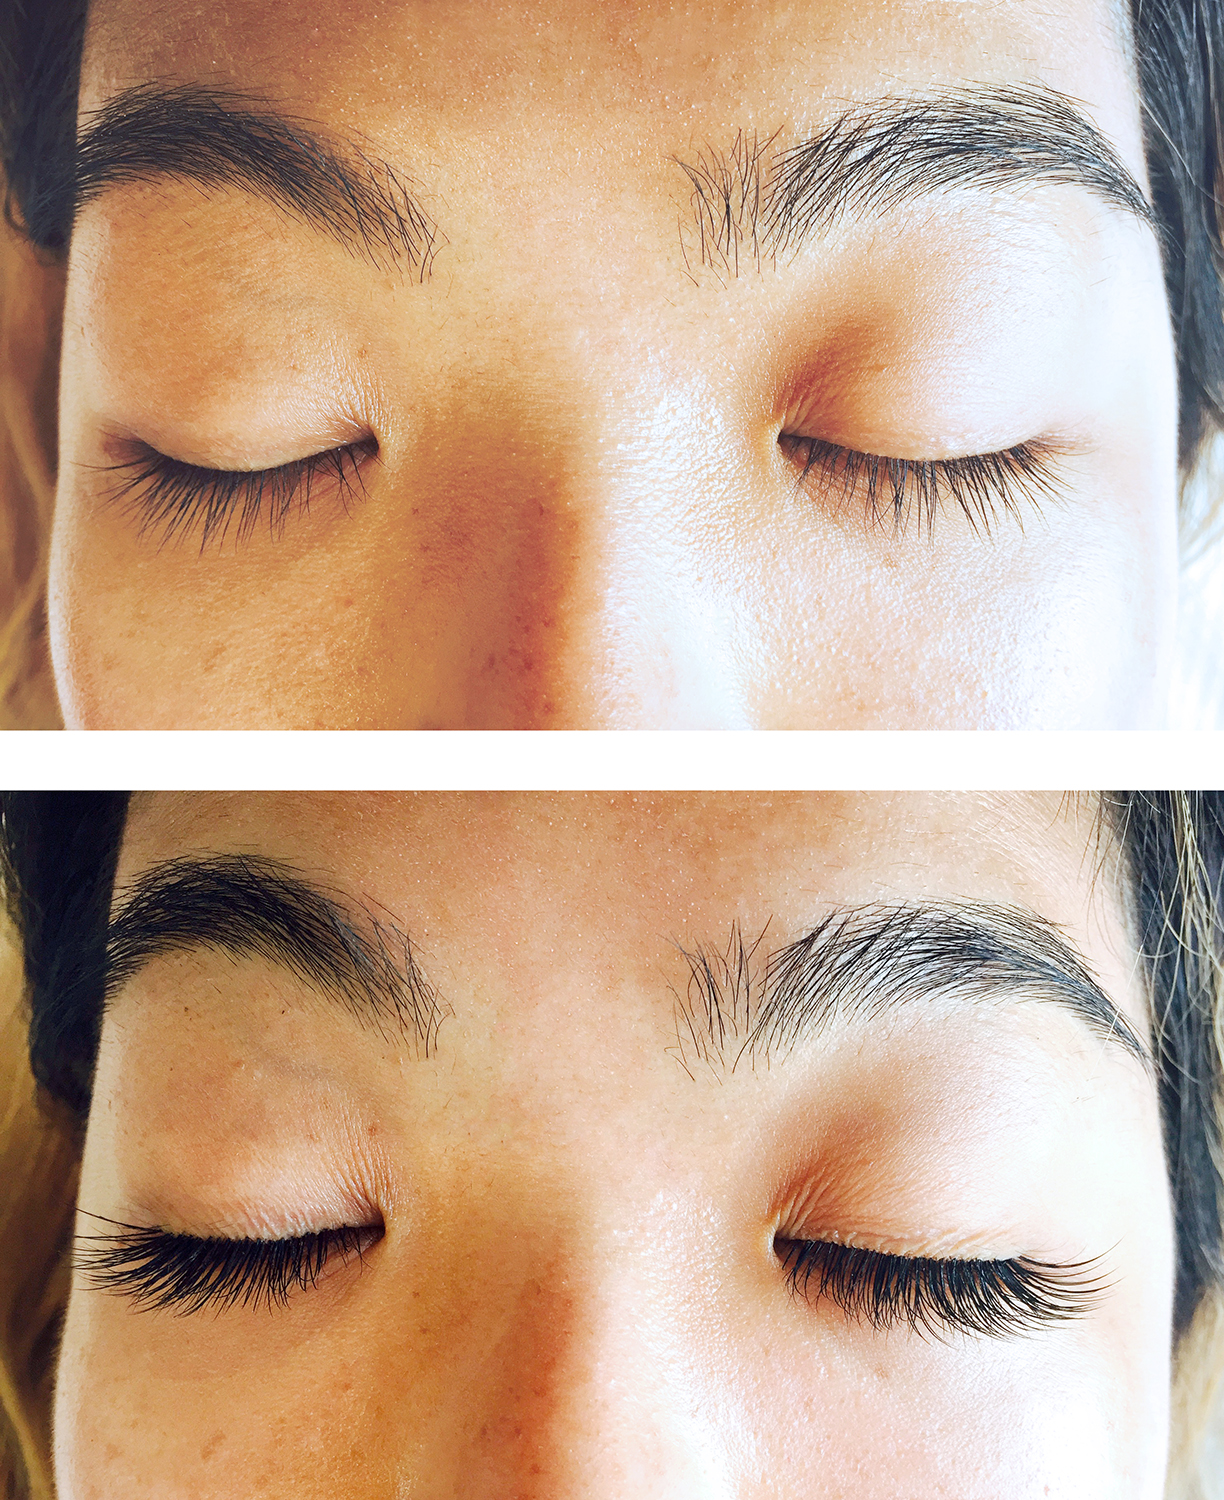 Jenny Jin before and after lash extensions